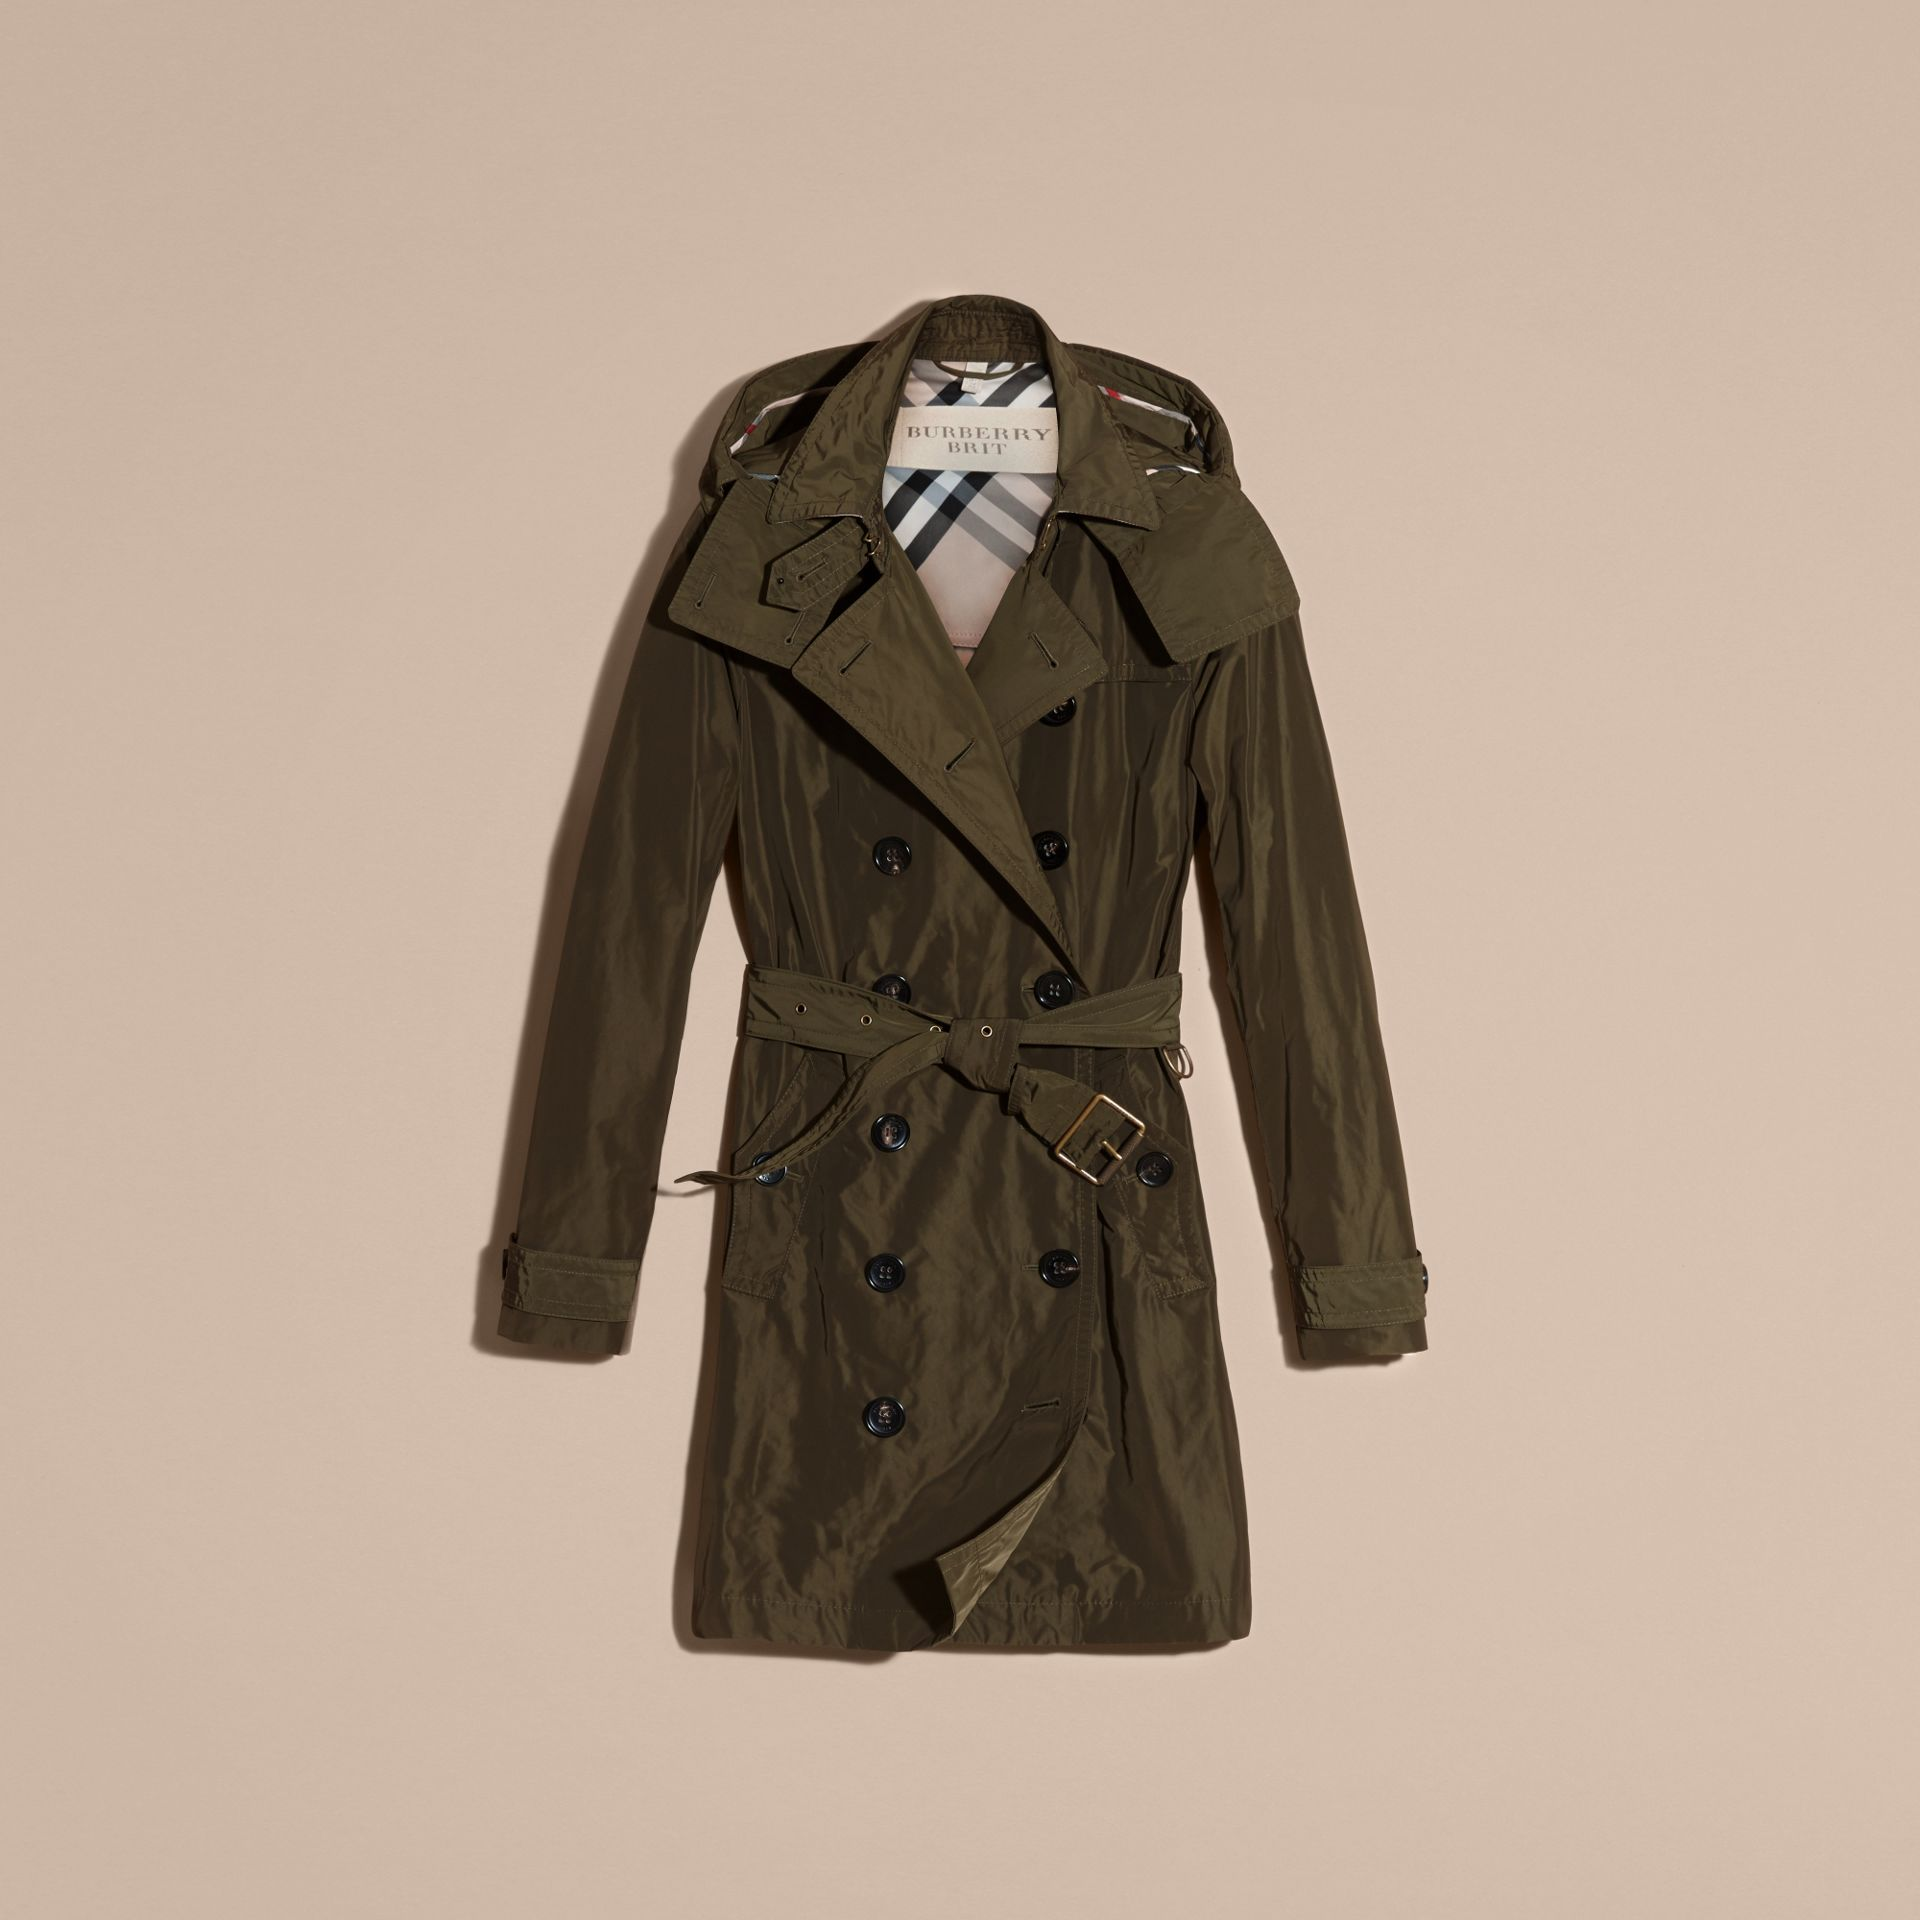 Taffeta Trench Coat with Detachable Hood in Dark Olive - Women | Burberry Singapore - gallery image 4